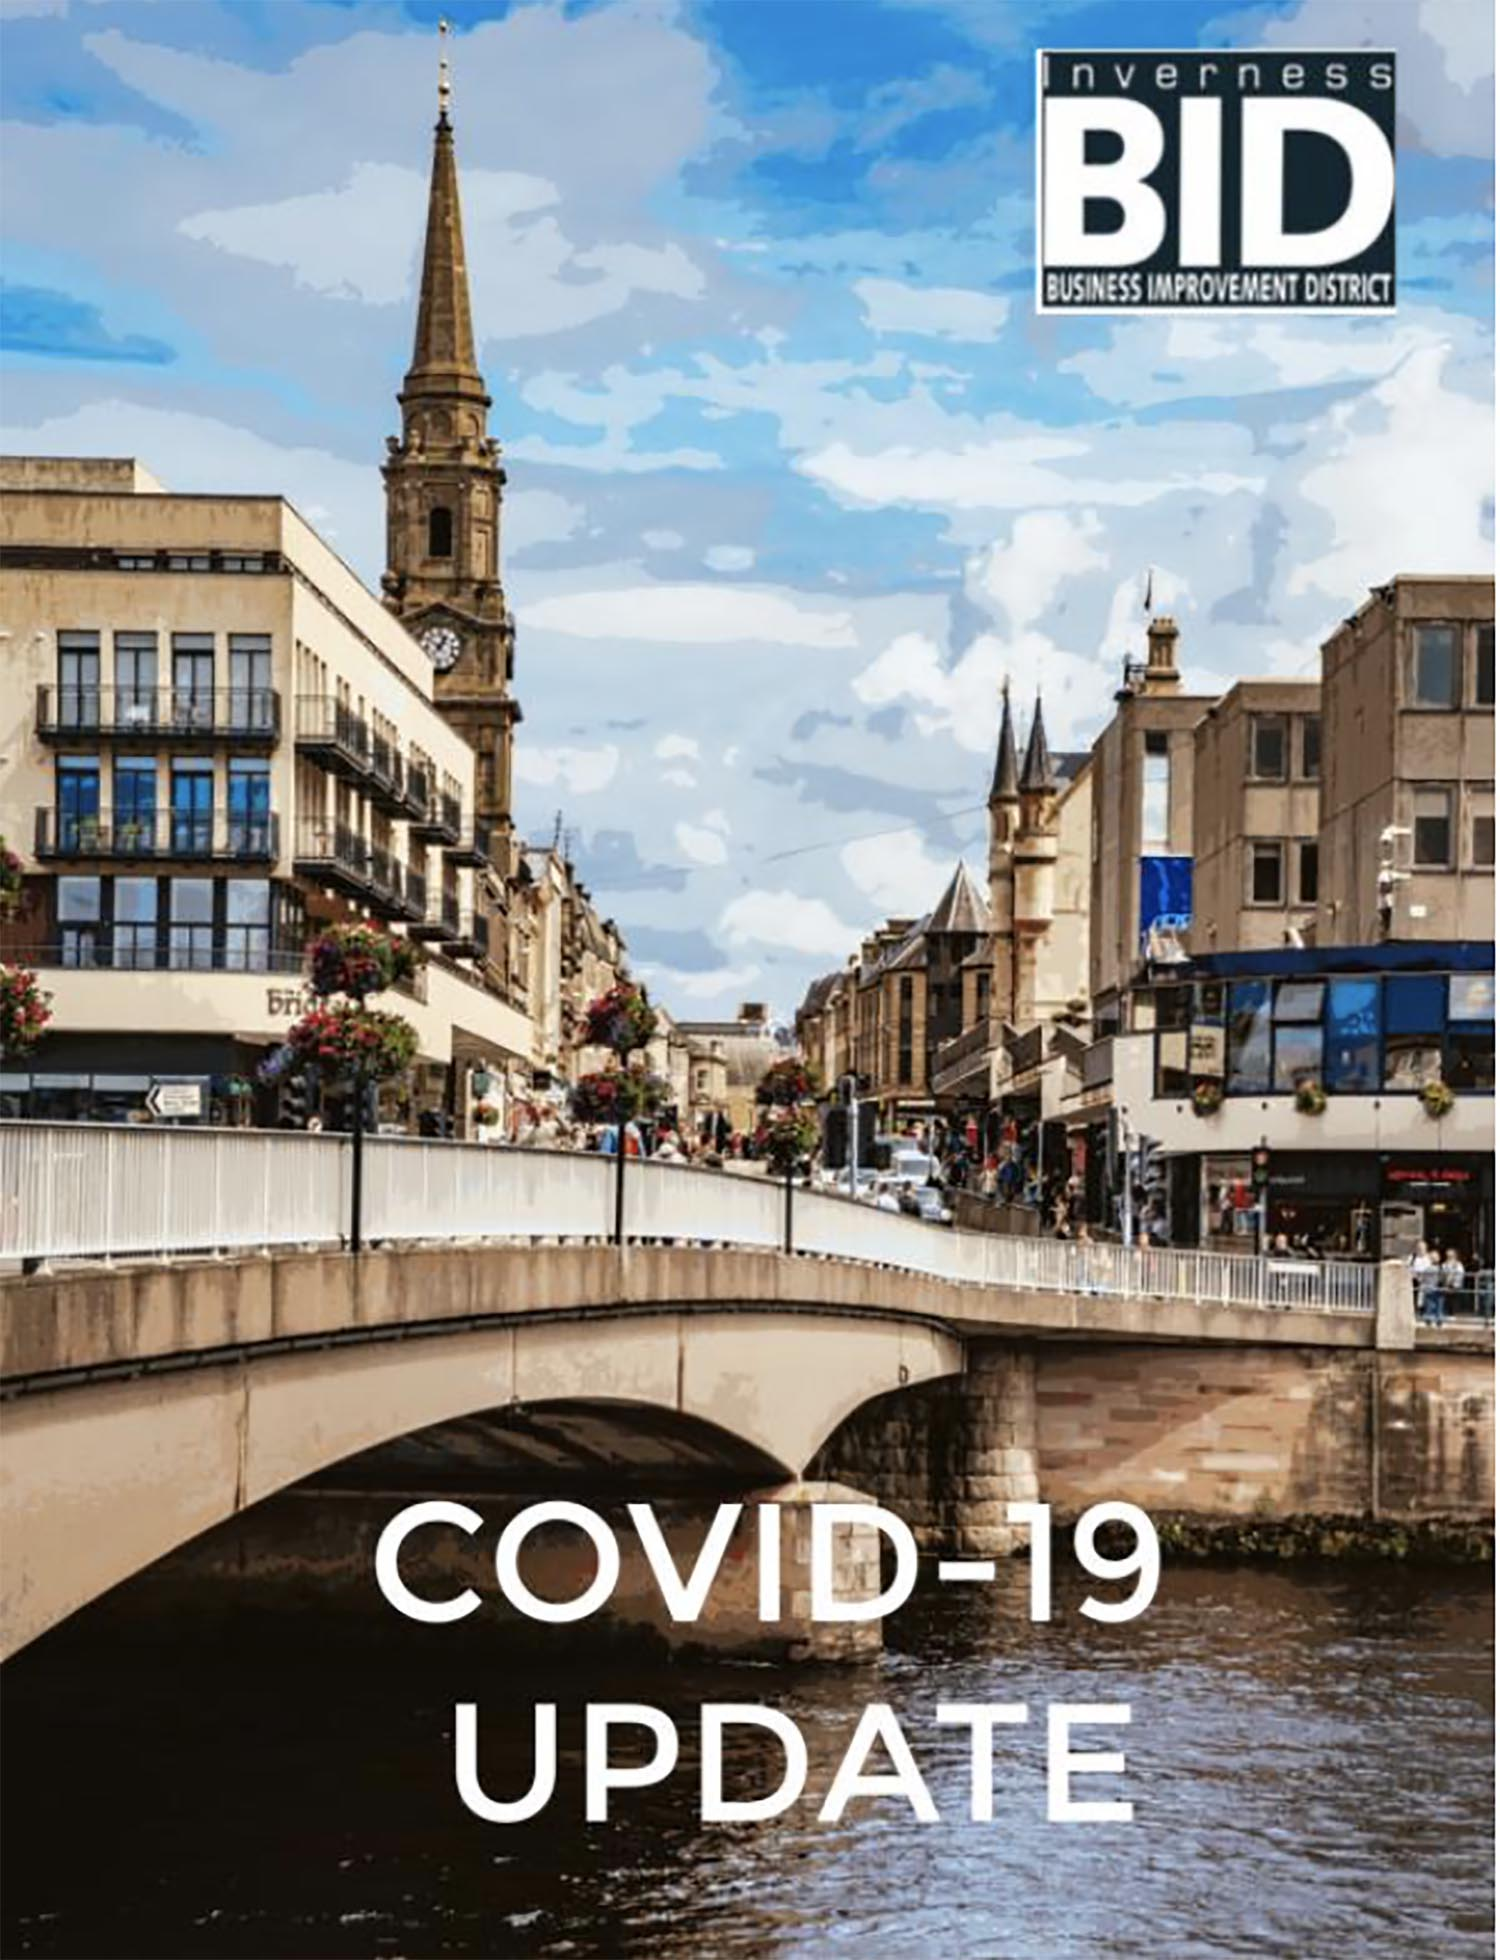 COVID-19 BUSINESS SUPPORT & UPDATES